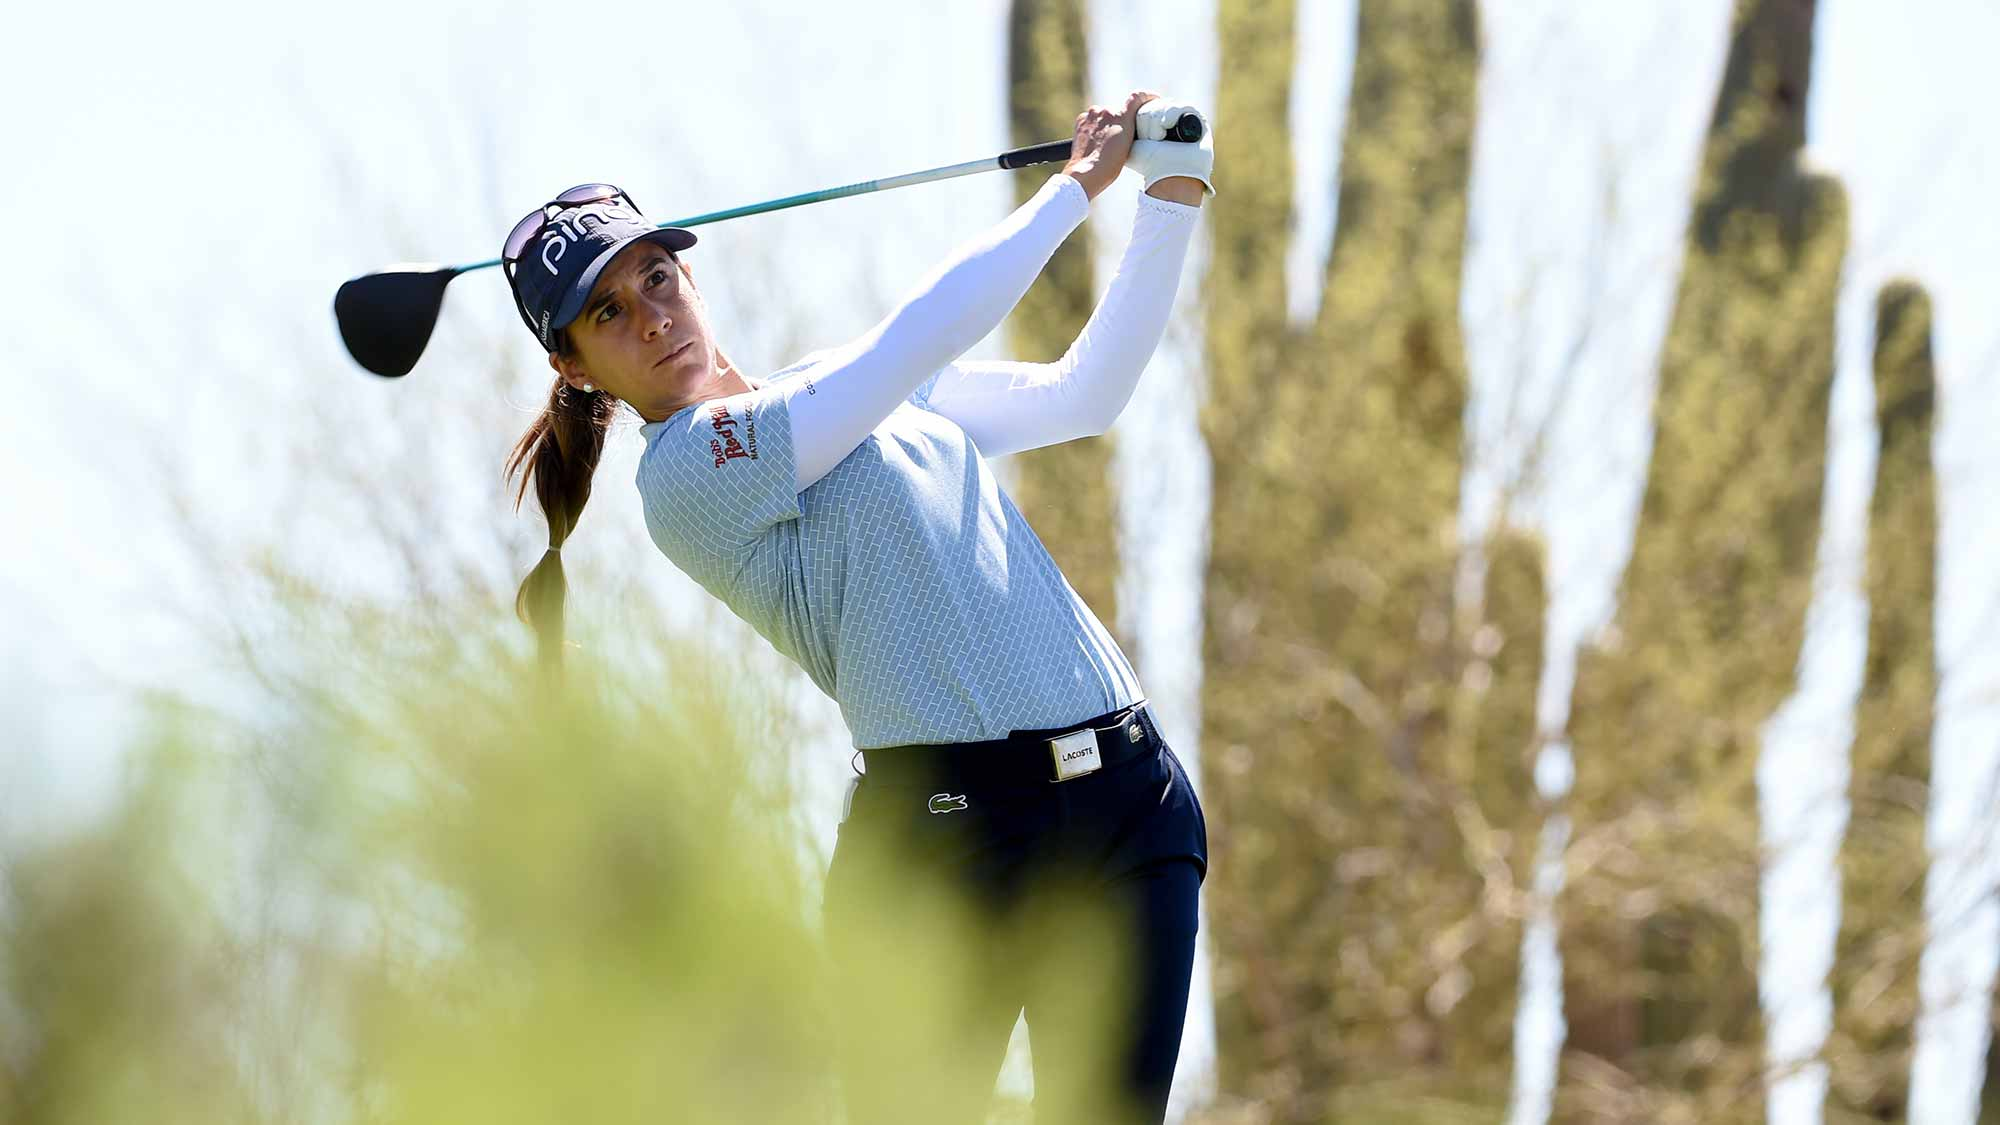 Azahara Munoz of Spain hits her tee shot on the 13th holeduring the third round of the Bank Of Hope Founders Cup at the Wildfire Golf Club on March 23, 2019 in Phoenix, Arizona